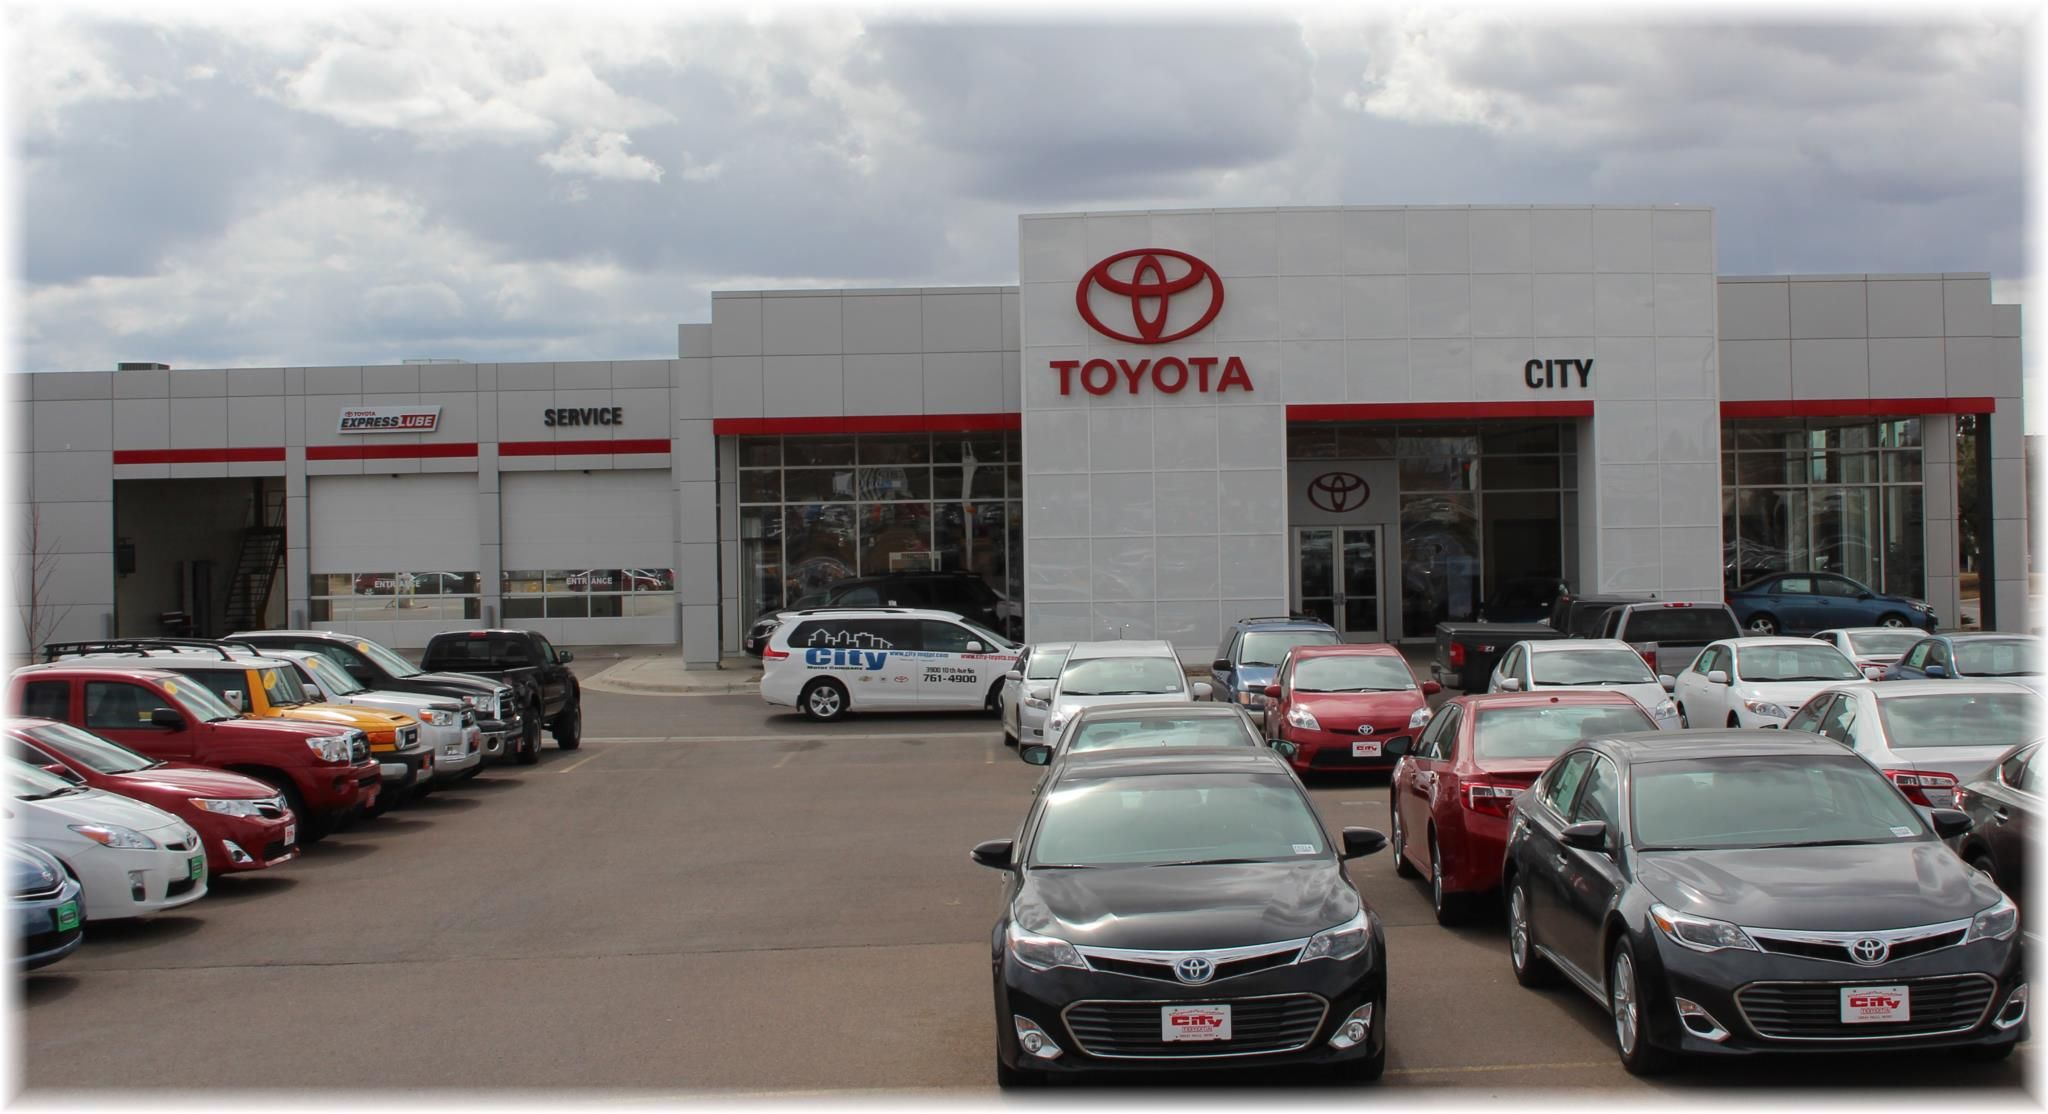 City Motor Company Is A Great Falls Toyota Dealer And A New Car And